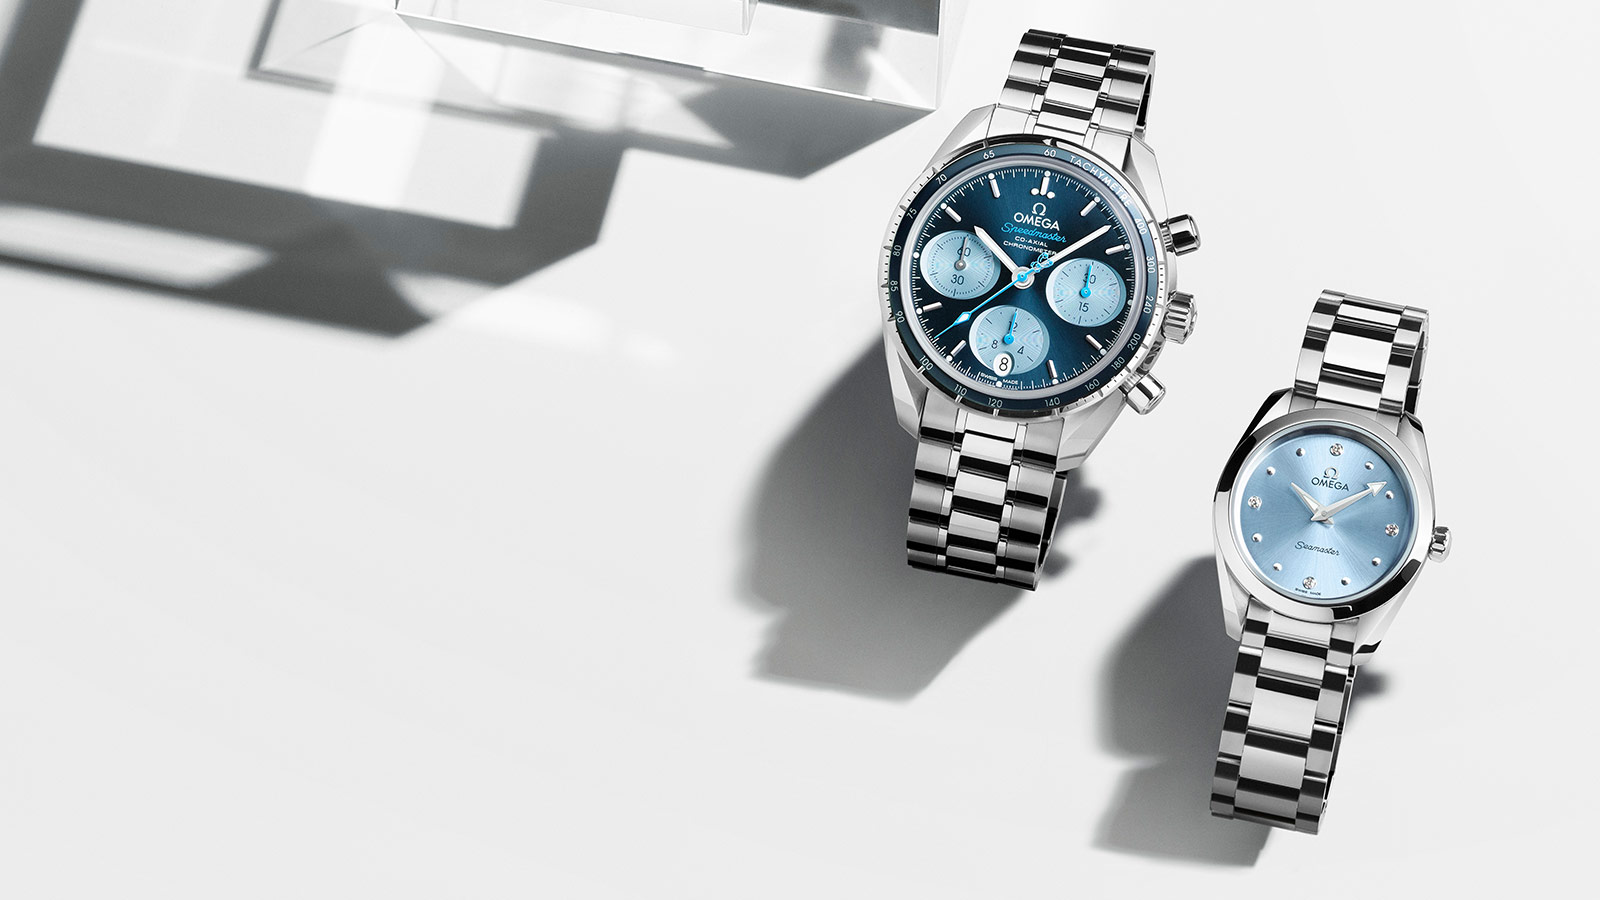 Two Omega watches side by side with stainless steel cases and bracelets and blue dials